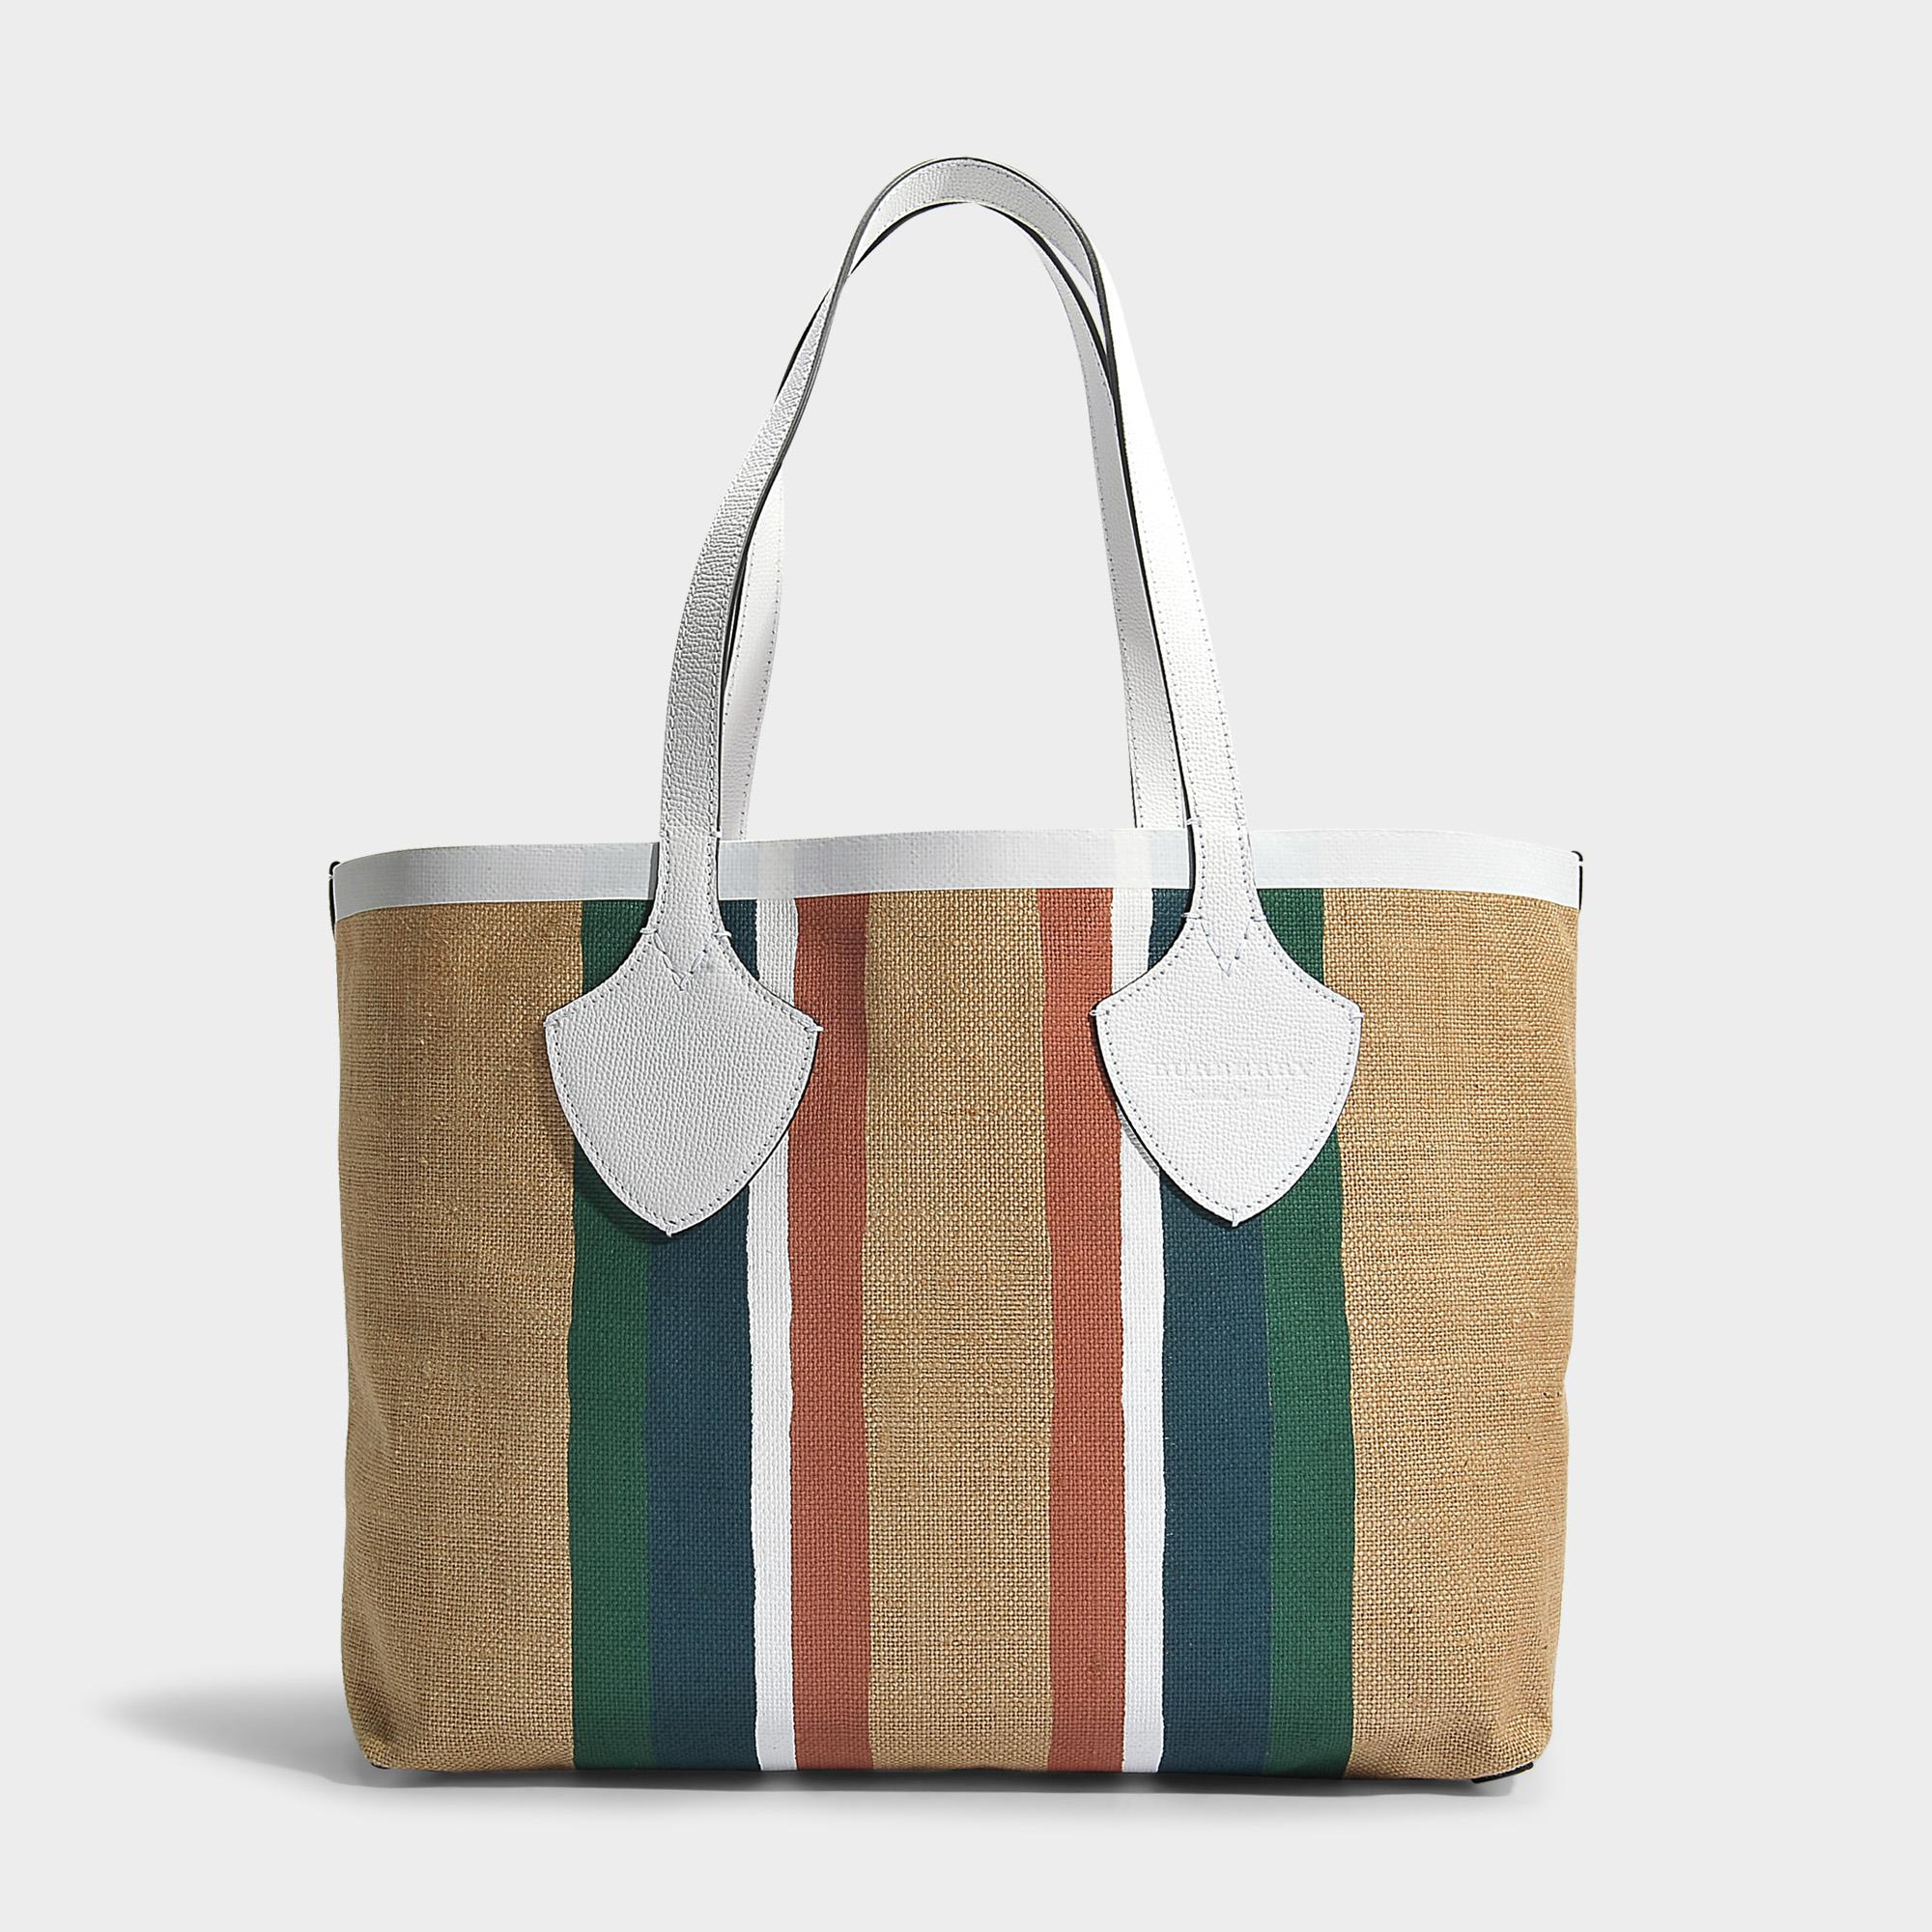 The Giant Large Tote Bag in Chalk White Printed Jute Burberry ip5QXiFE